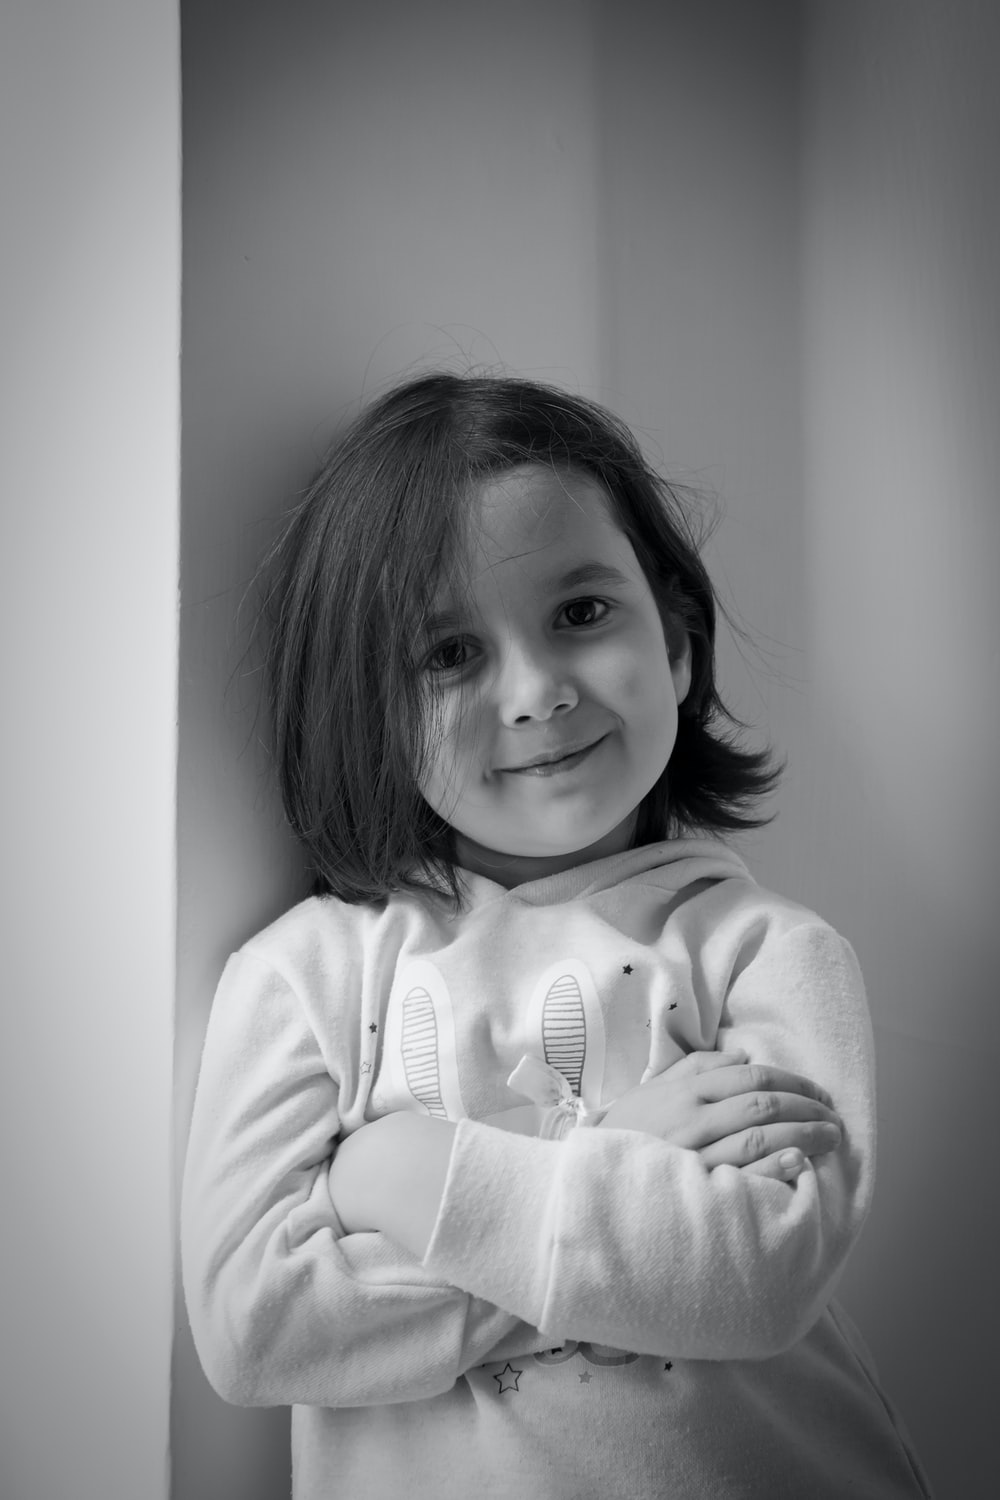 grayscale photo of girl in sweater